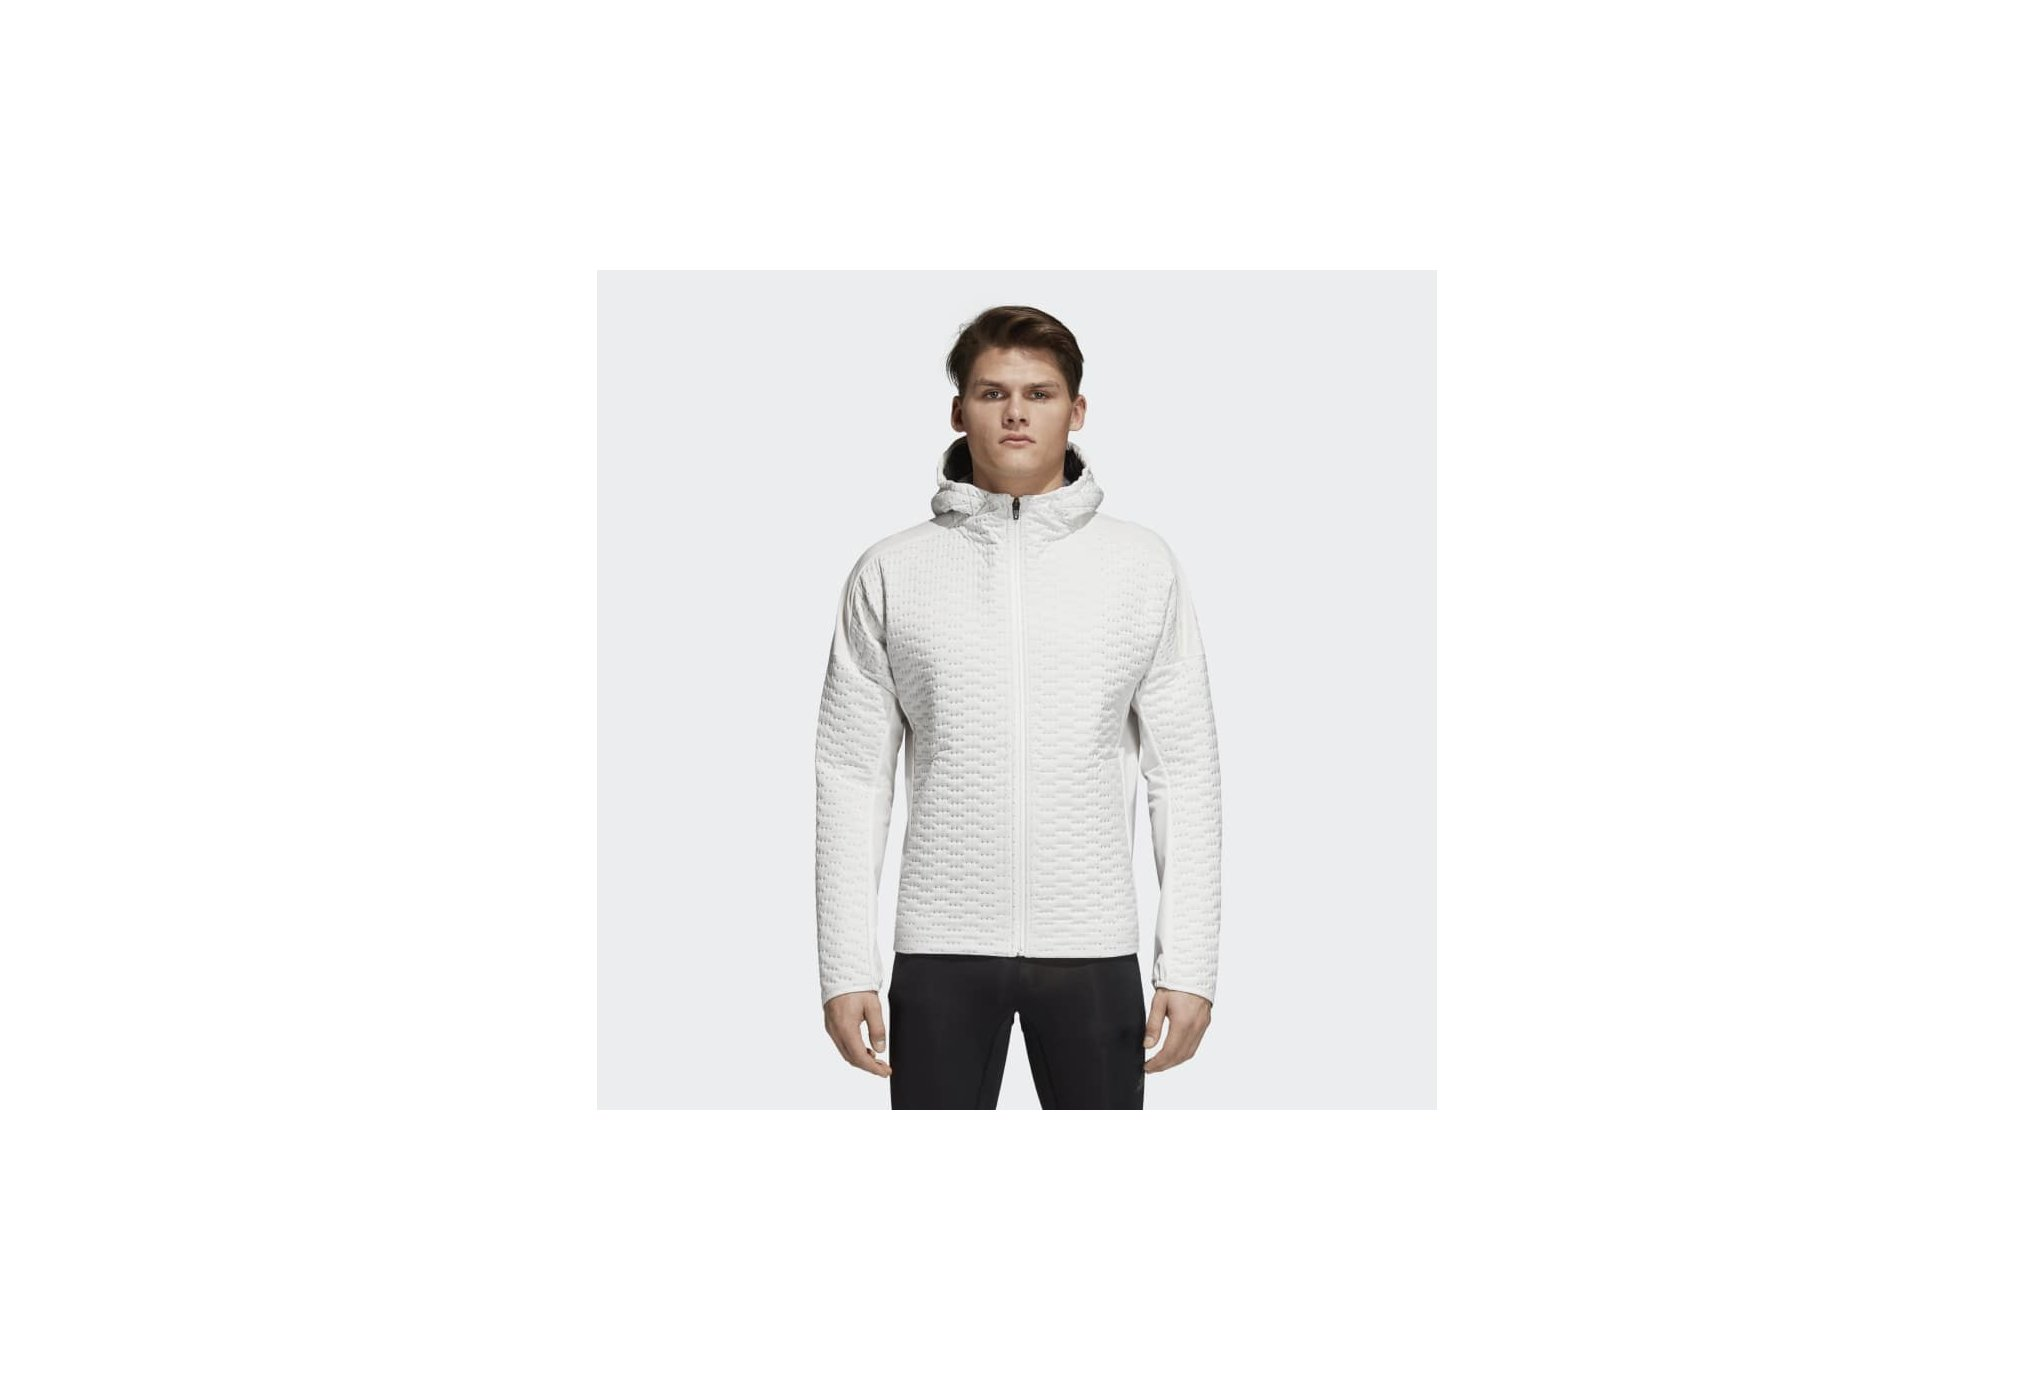 Adidas Z.N.e. winter m vêtement running homme